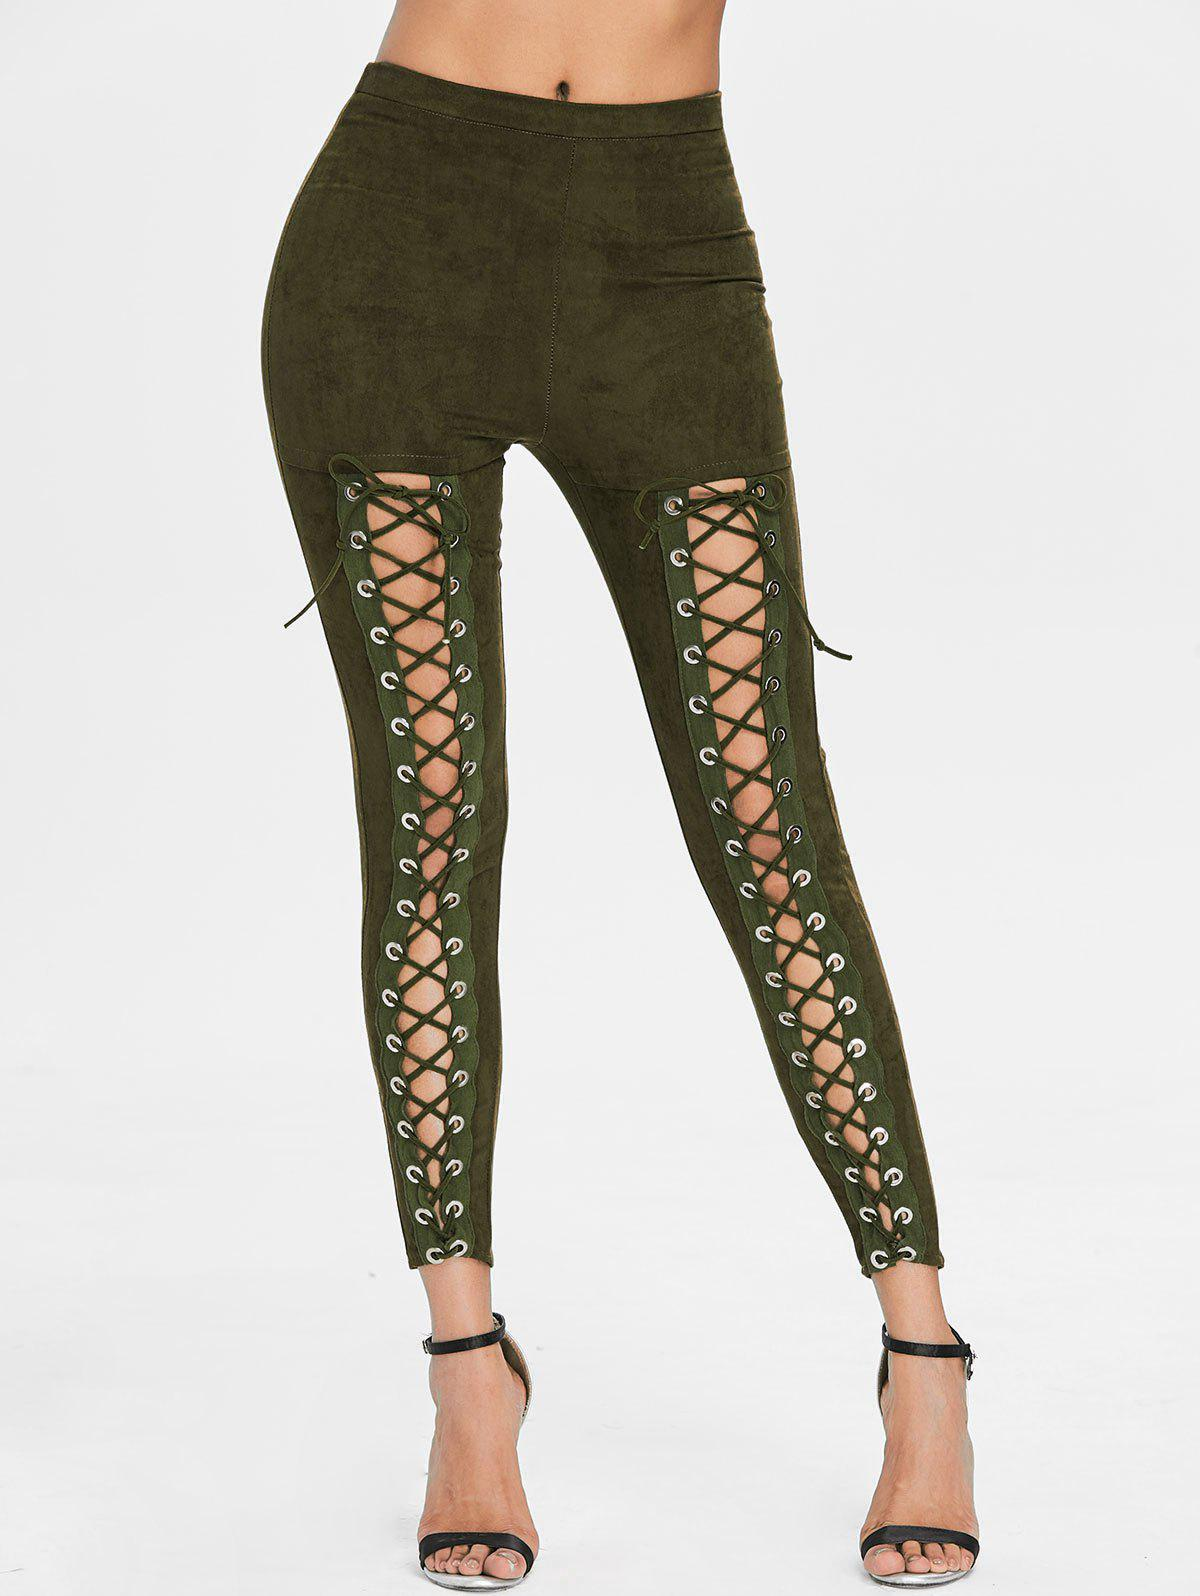 Lace Up High Waist Faux Suede Pants - ARMY GREEN 2XL